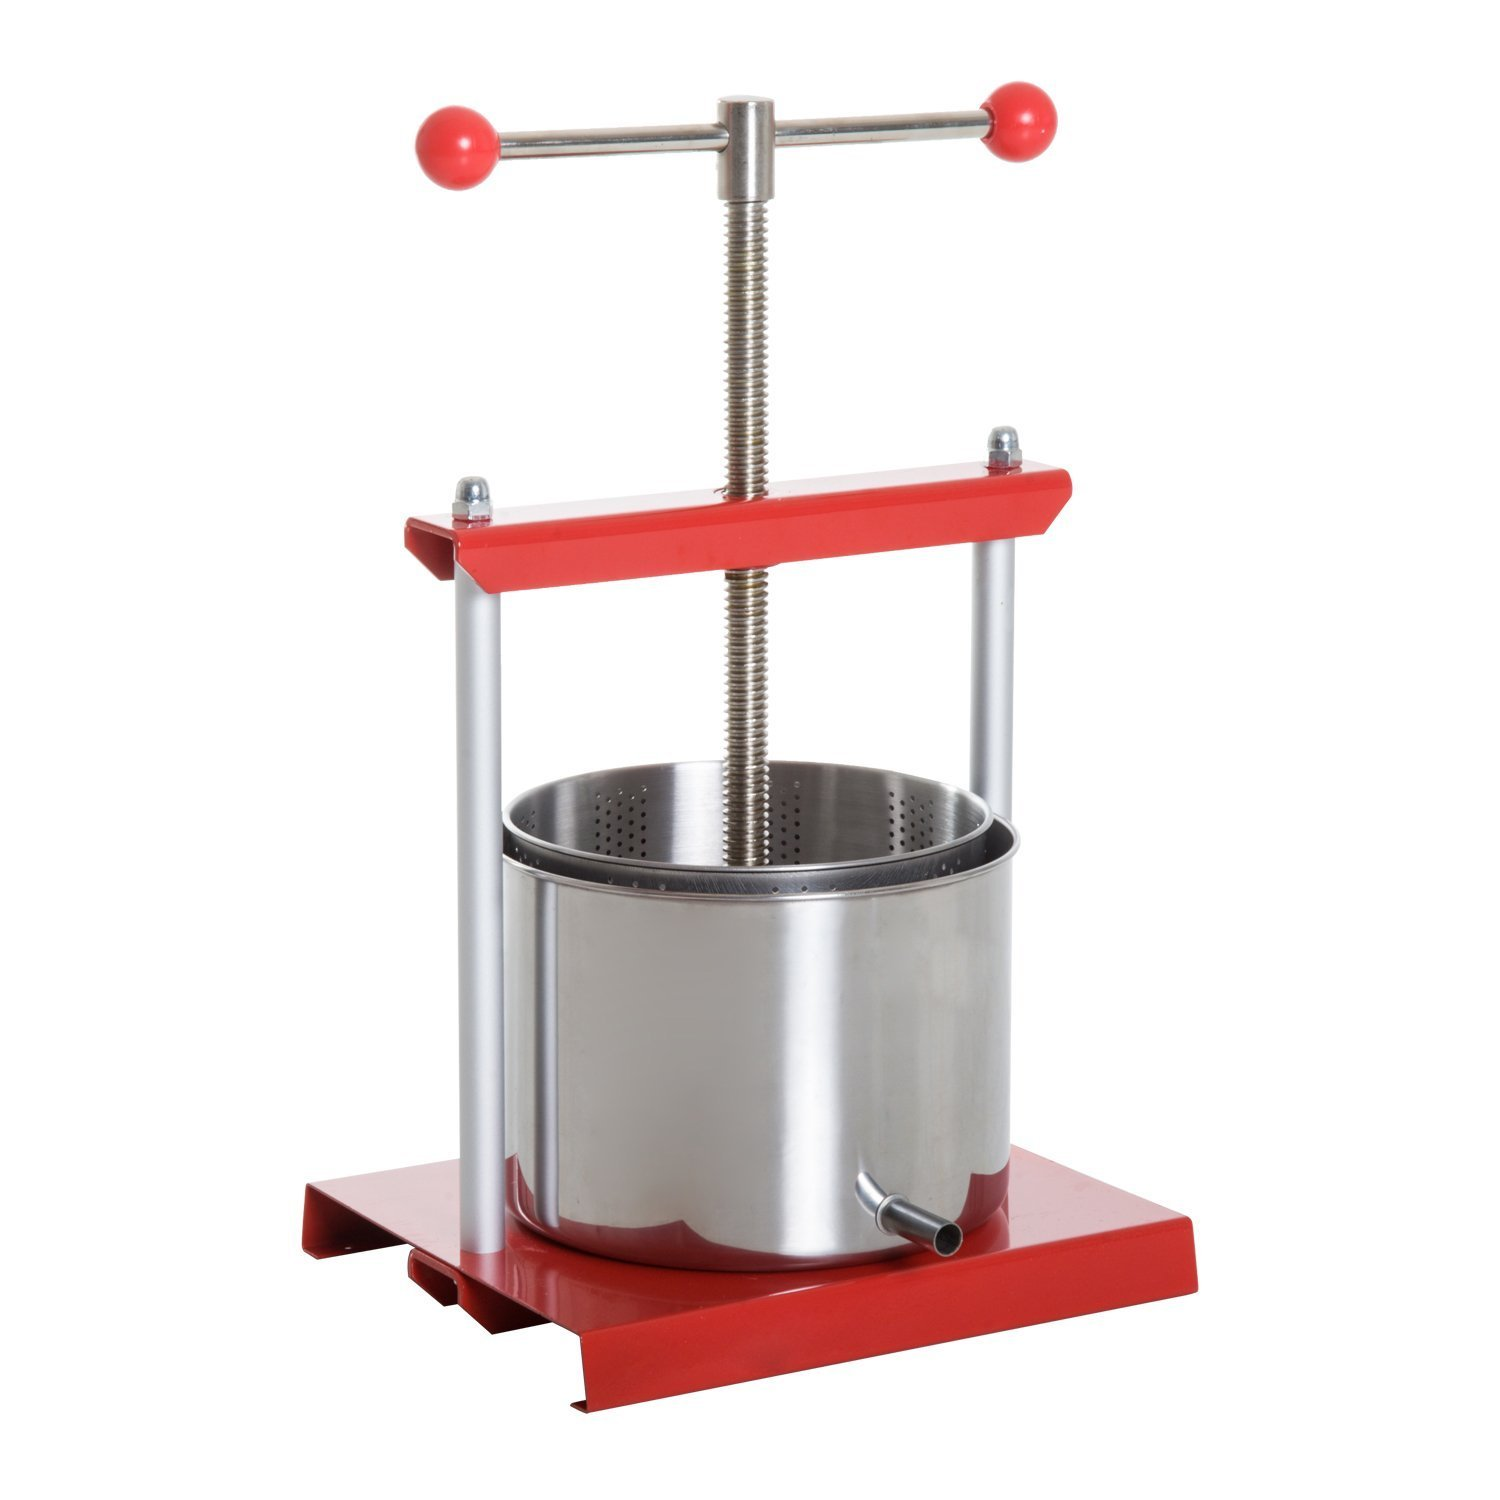 HOMCOM 1.4 Gallon Stainless Steel Fruit Juice Maker and Wine Press - Red